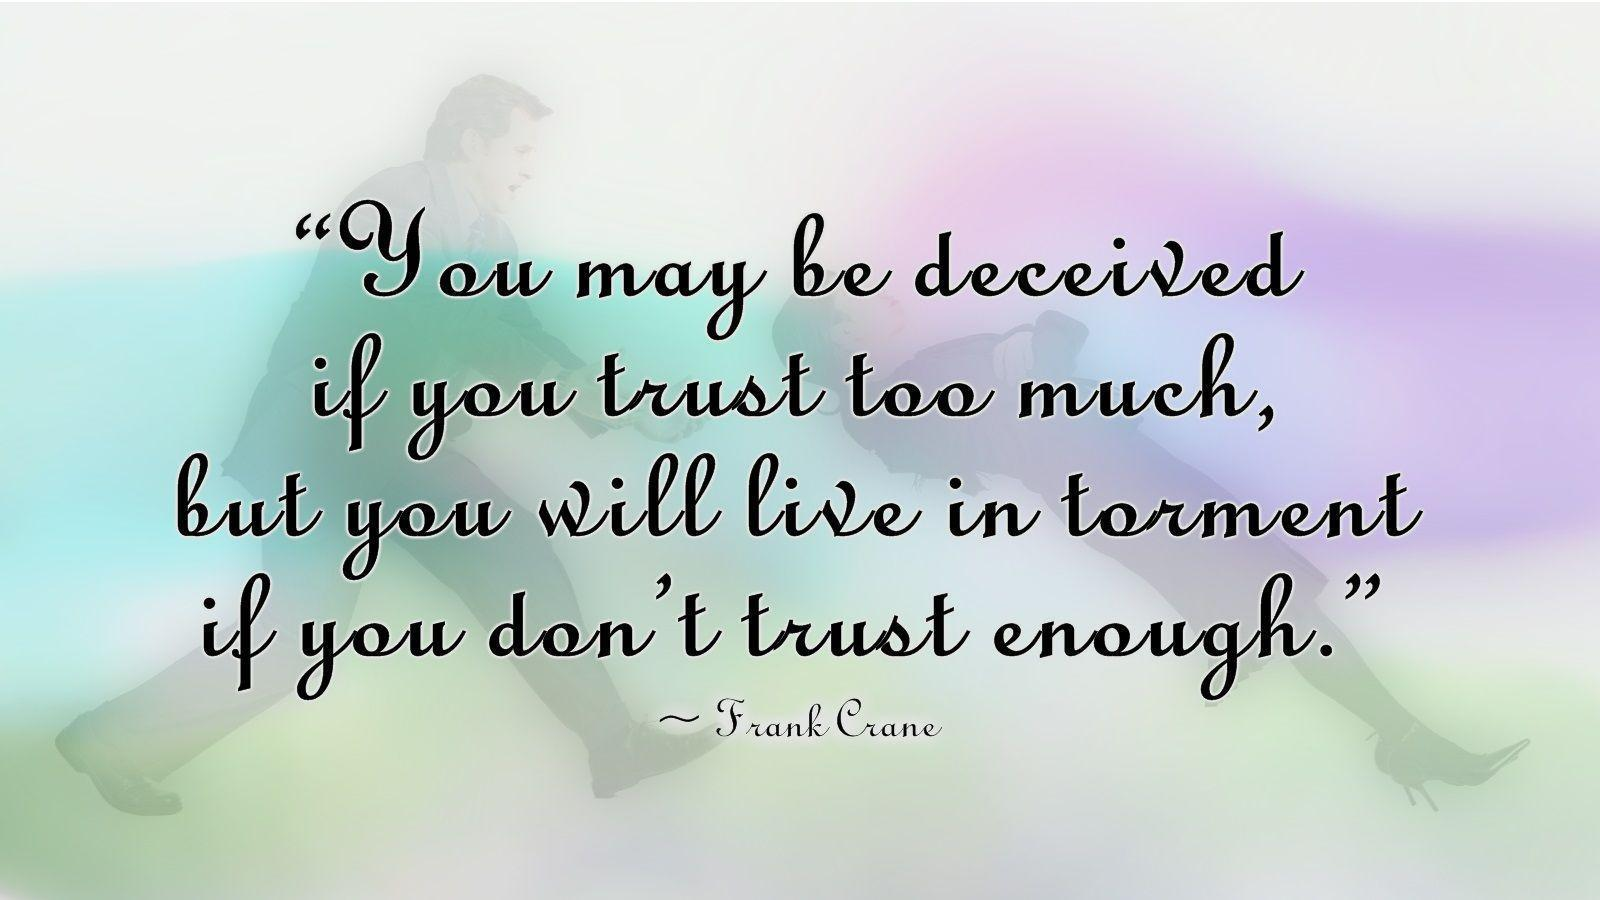 trust quotes for friends whatsapps facebook tumblr sms image